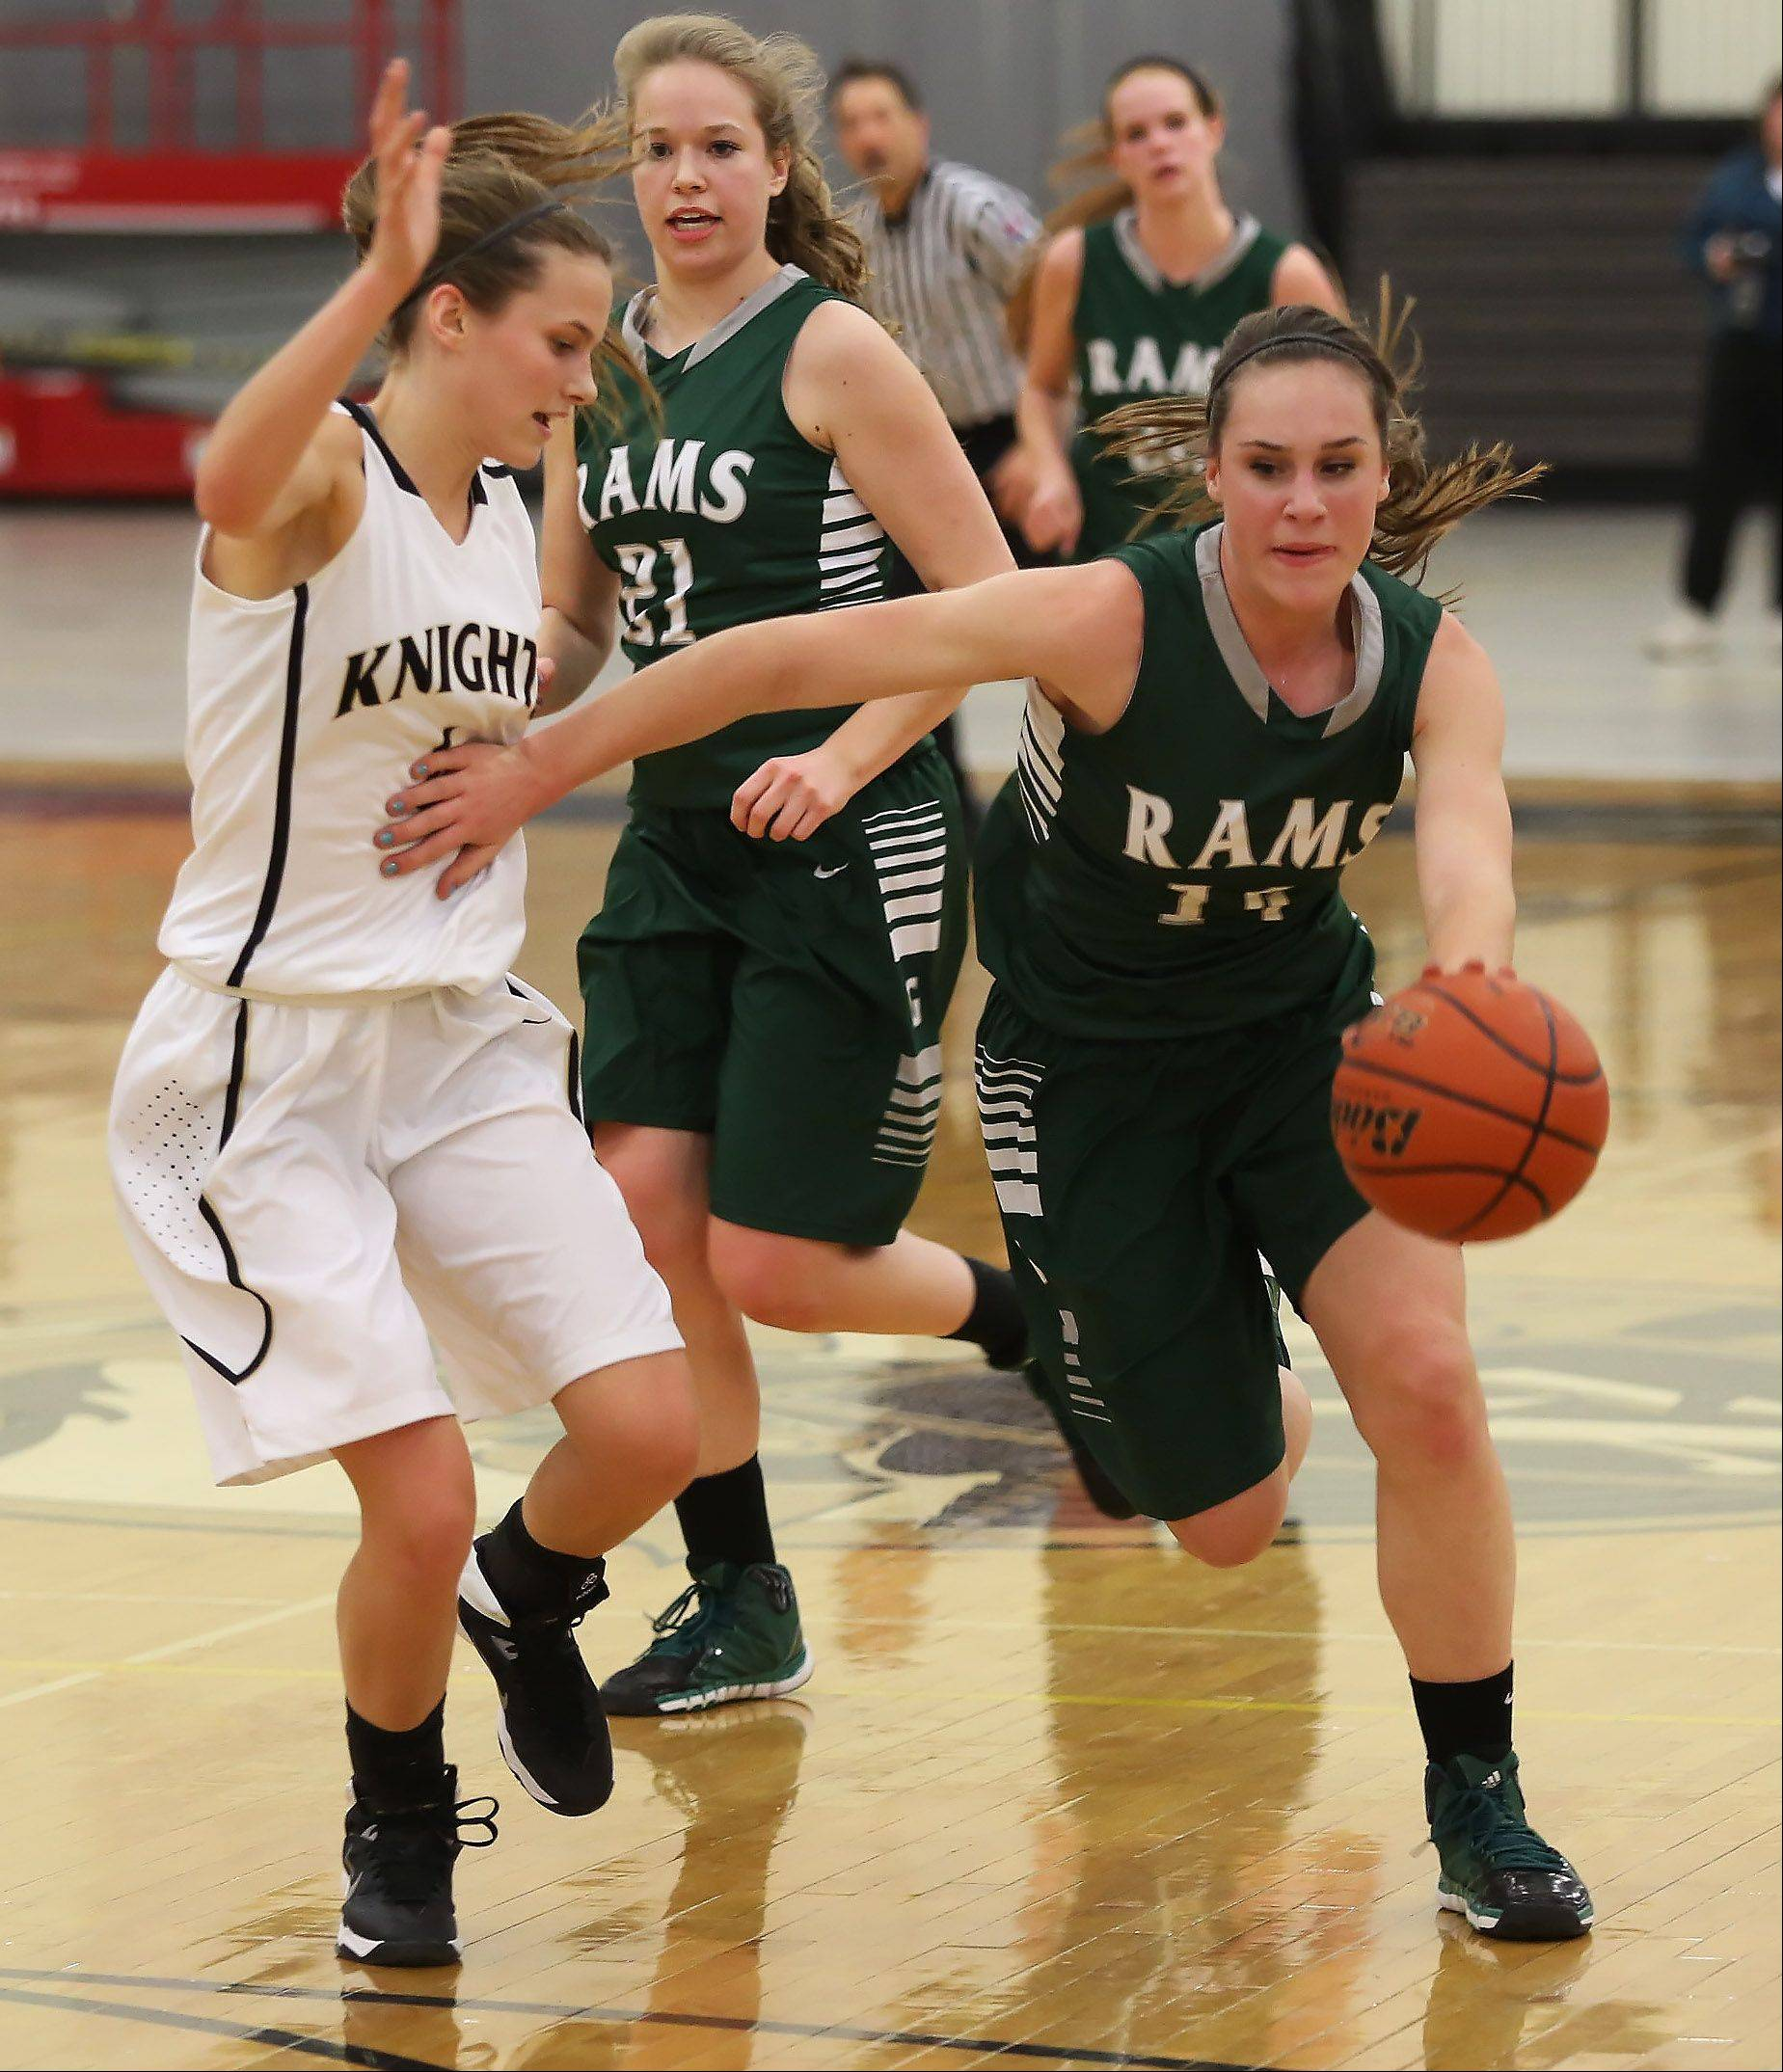 Grayslake Central guard Kayley Larson pushes Grayslake North guard Maggie Fish as she drives to the basket.